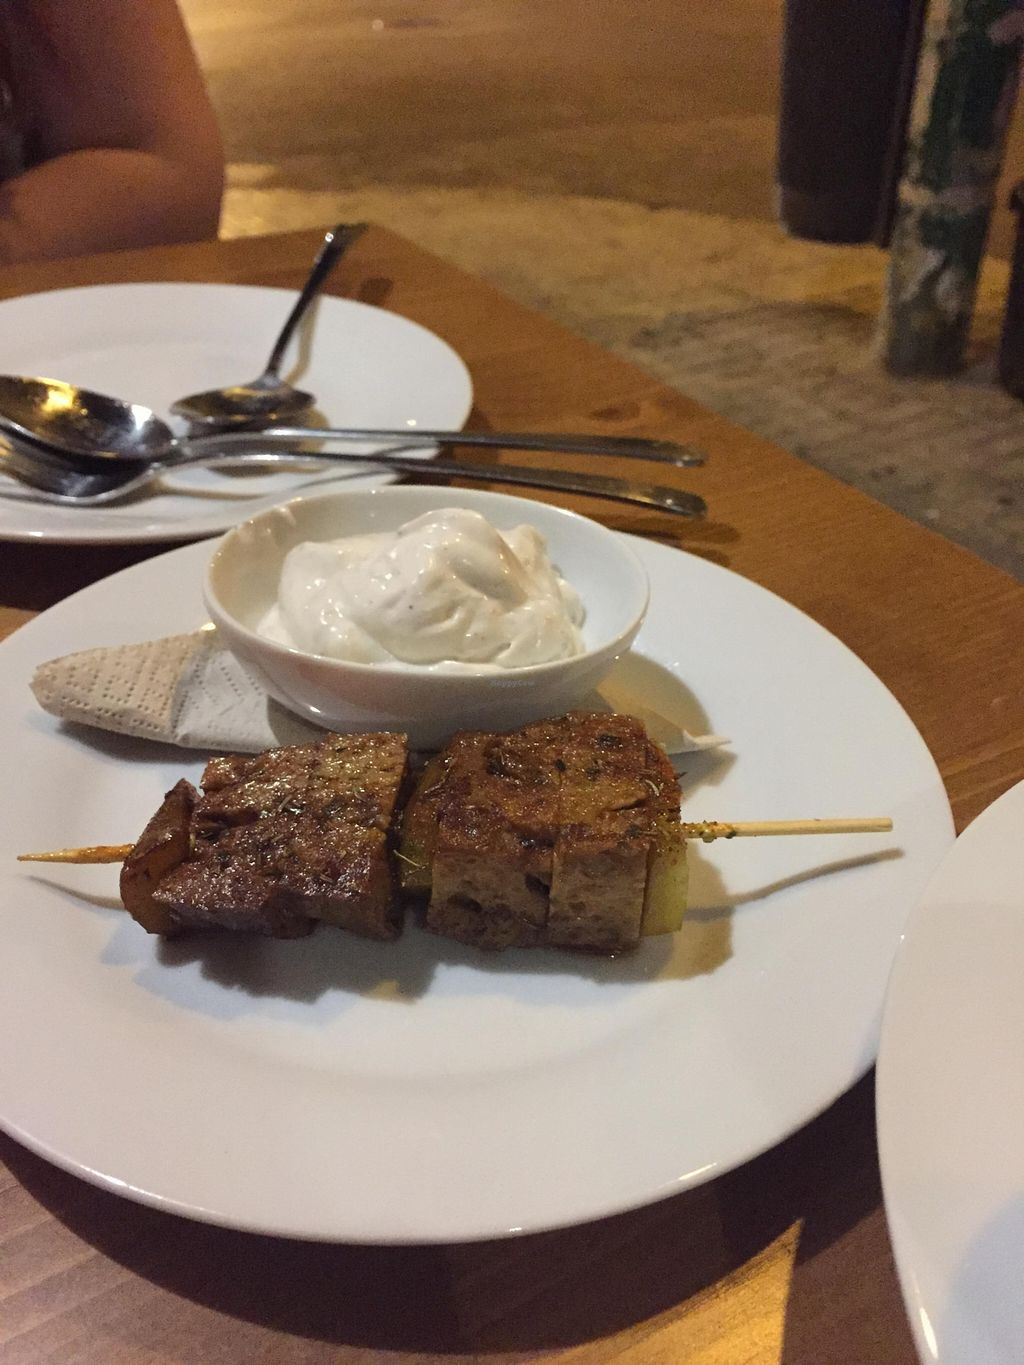 """Photo of CLOSED: La Golondrina  by <a href=""""/members/profile/Littlething"""">Littlething</a> <br/>Grilled seitan <br/> November 16, 2015  - <a href='/contact/abuse/image/52670/125138'>Report</a>"""